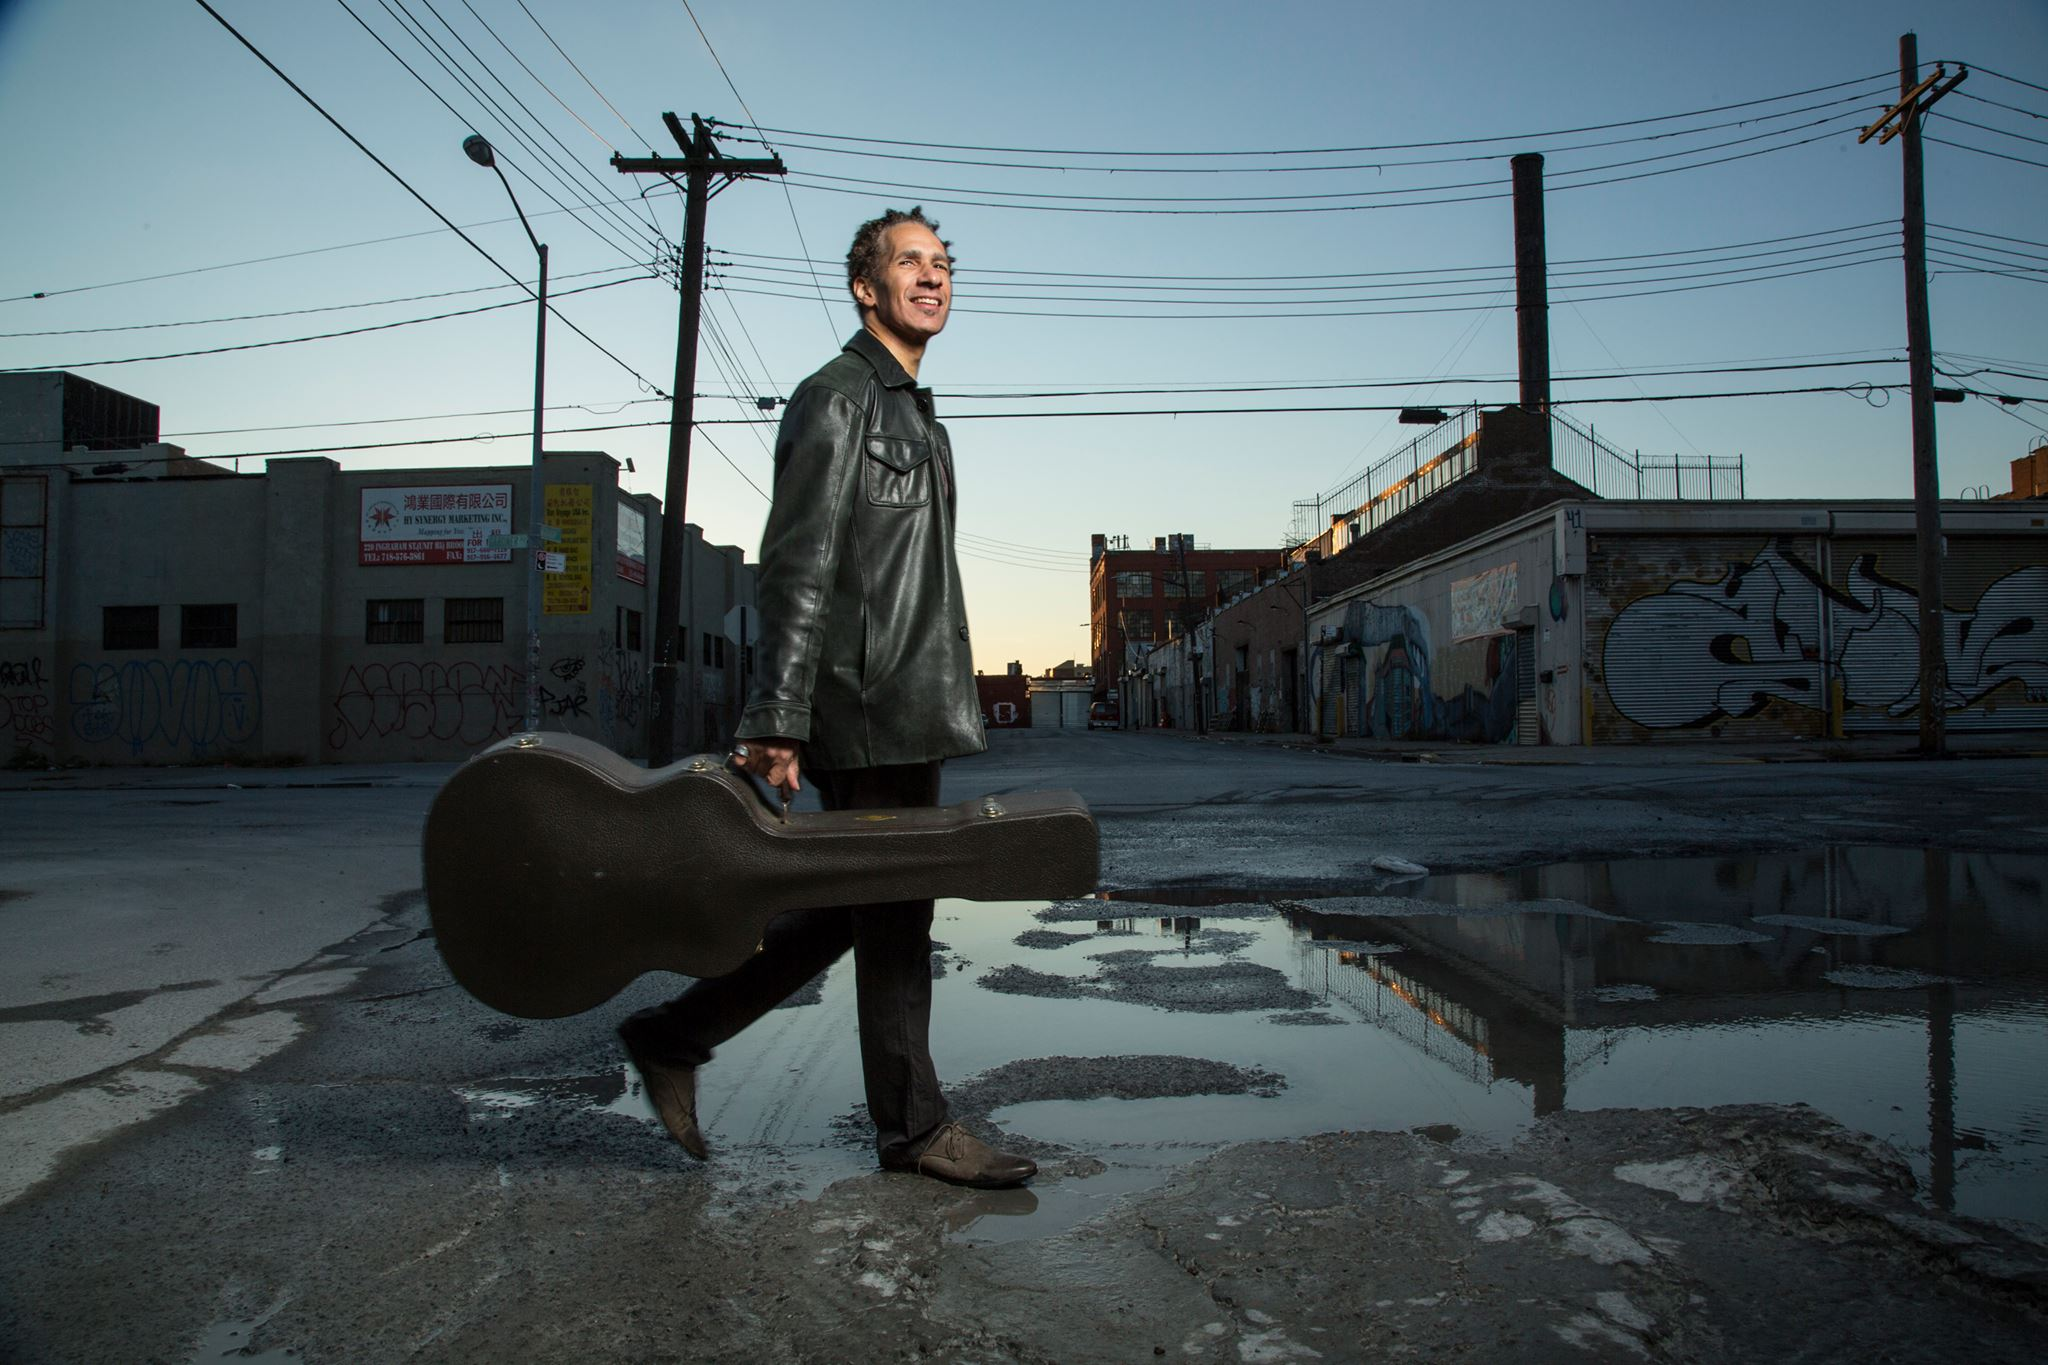 guitarist David Gilmore walking down a rain-soaked street